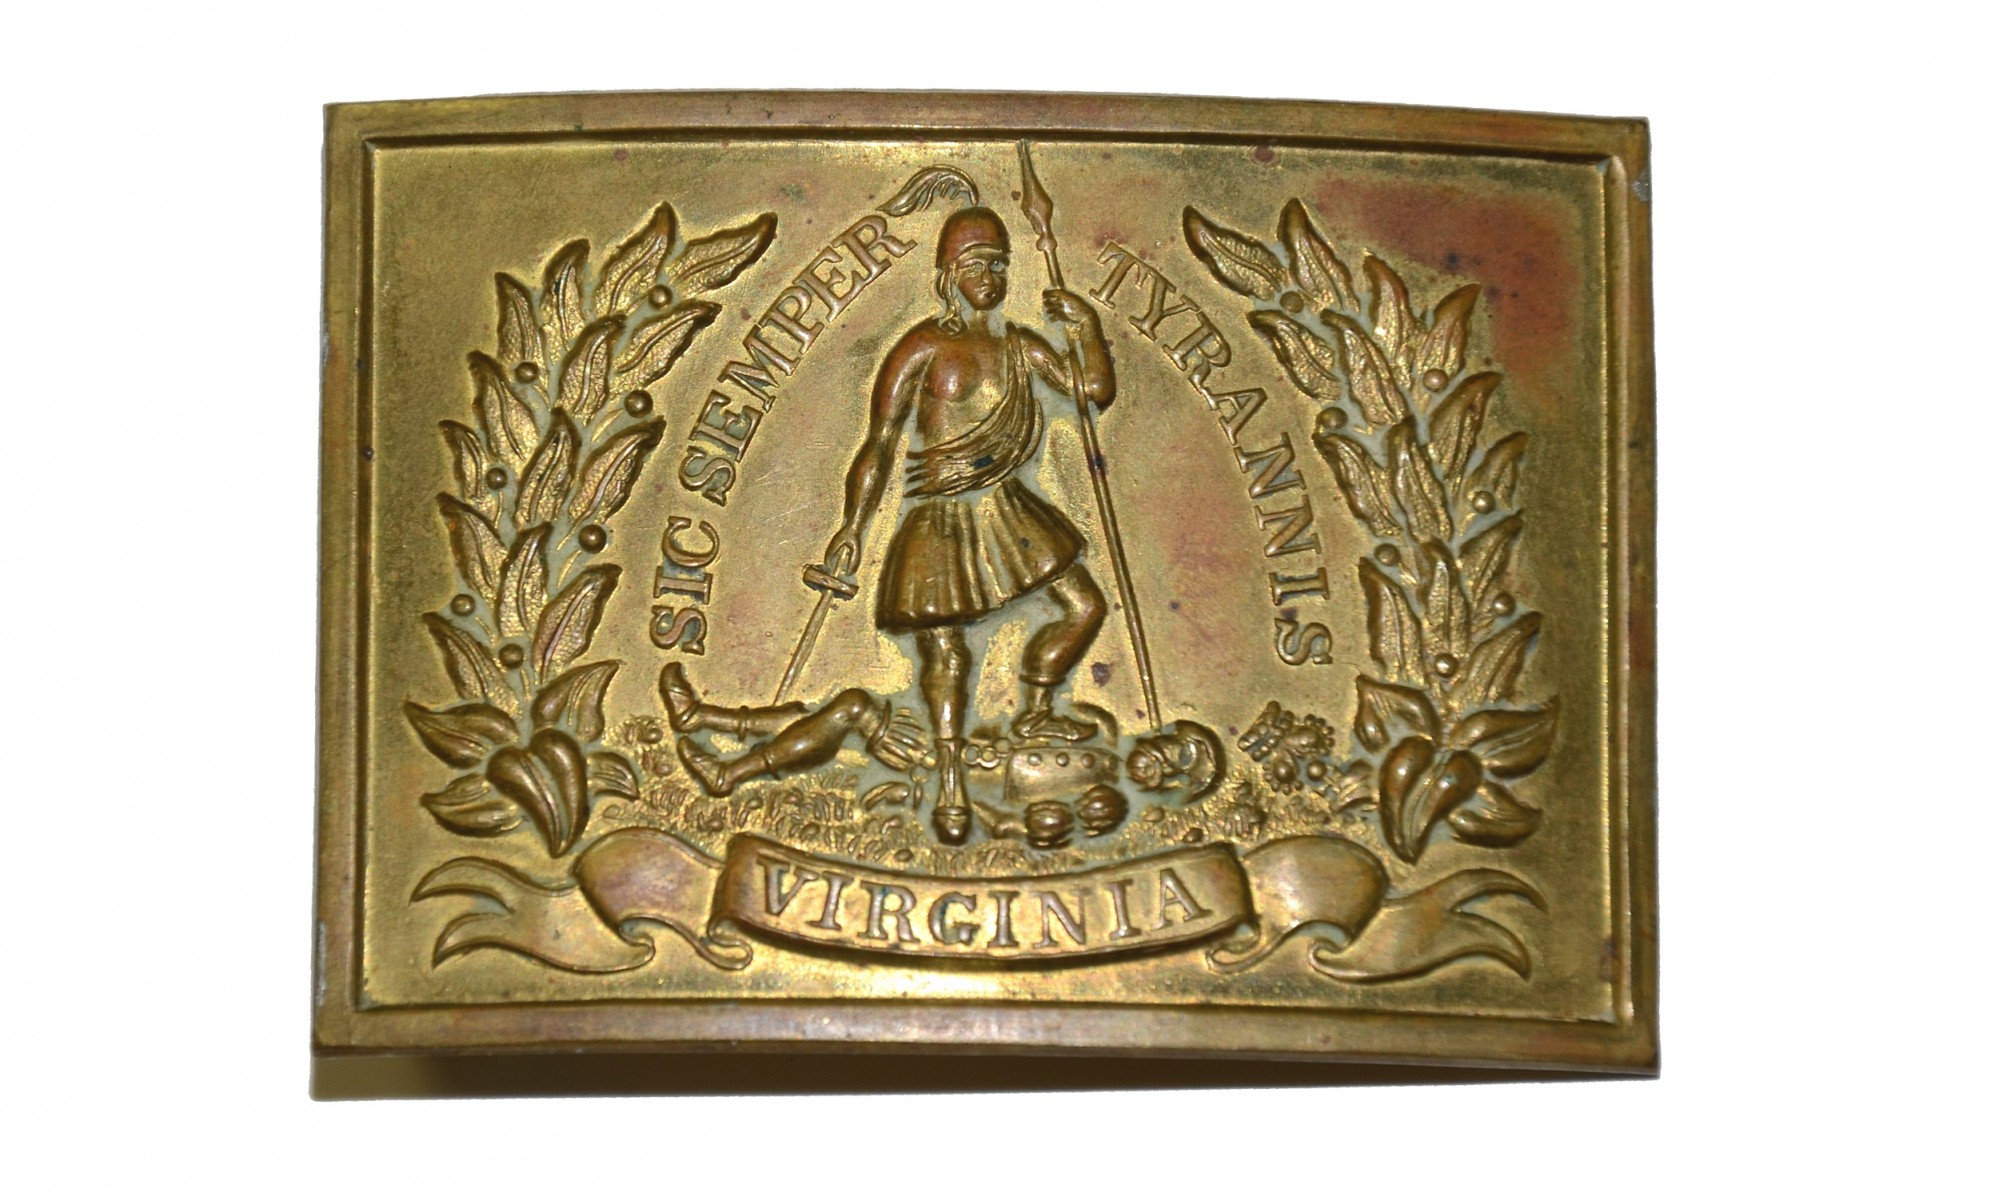 PRE-CIVIL WAR VIRGINIA RECTANGULAR SWORD BELT PLATE